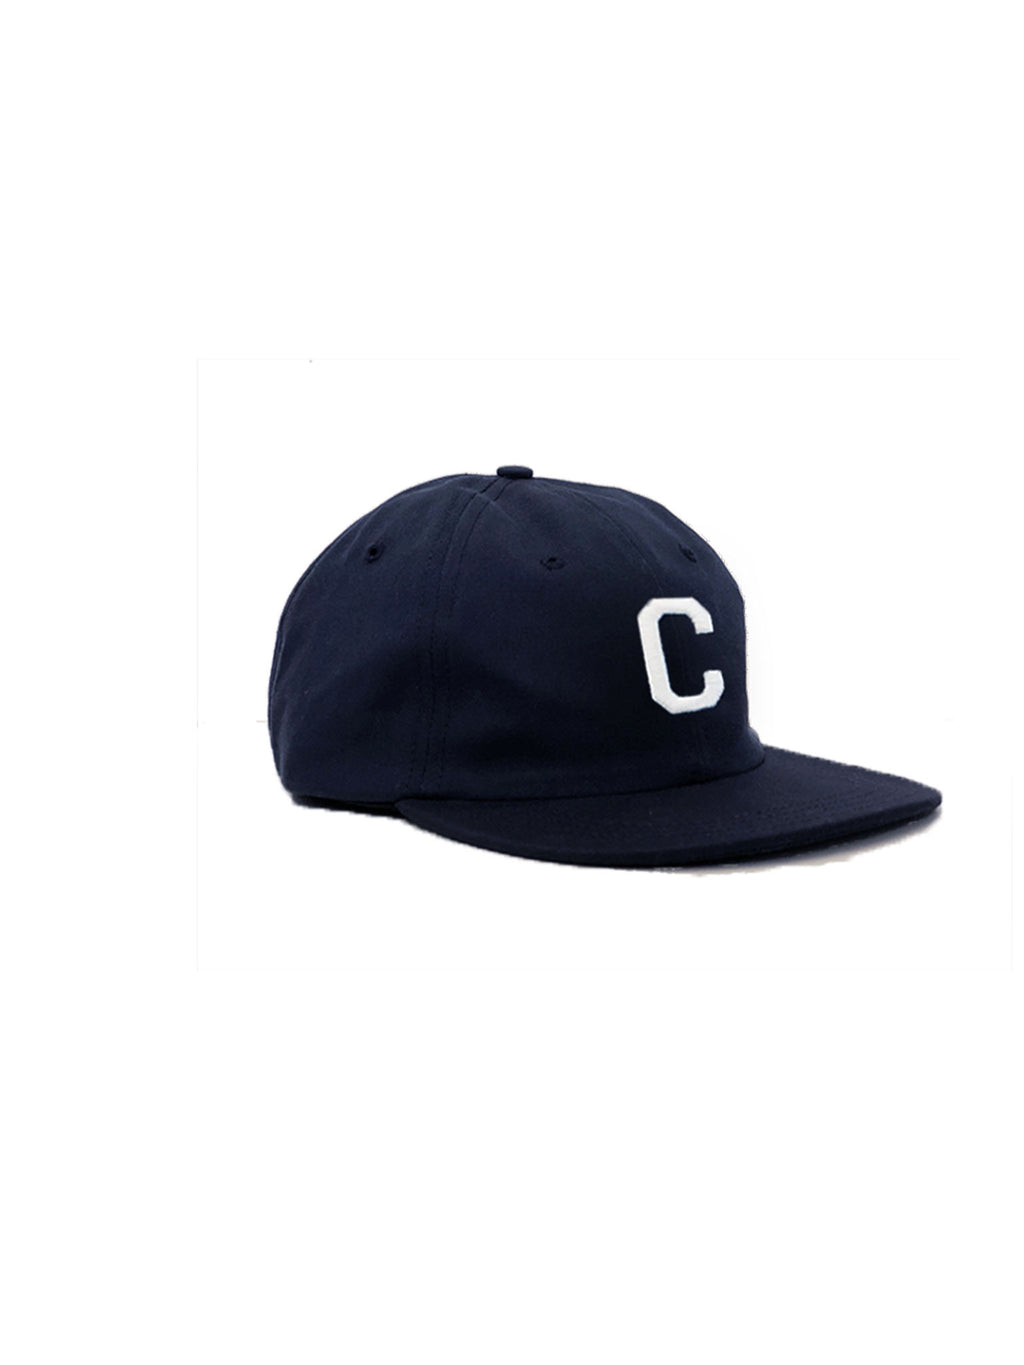 Varsity C Dad Hat - Navy